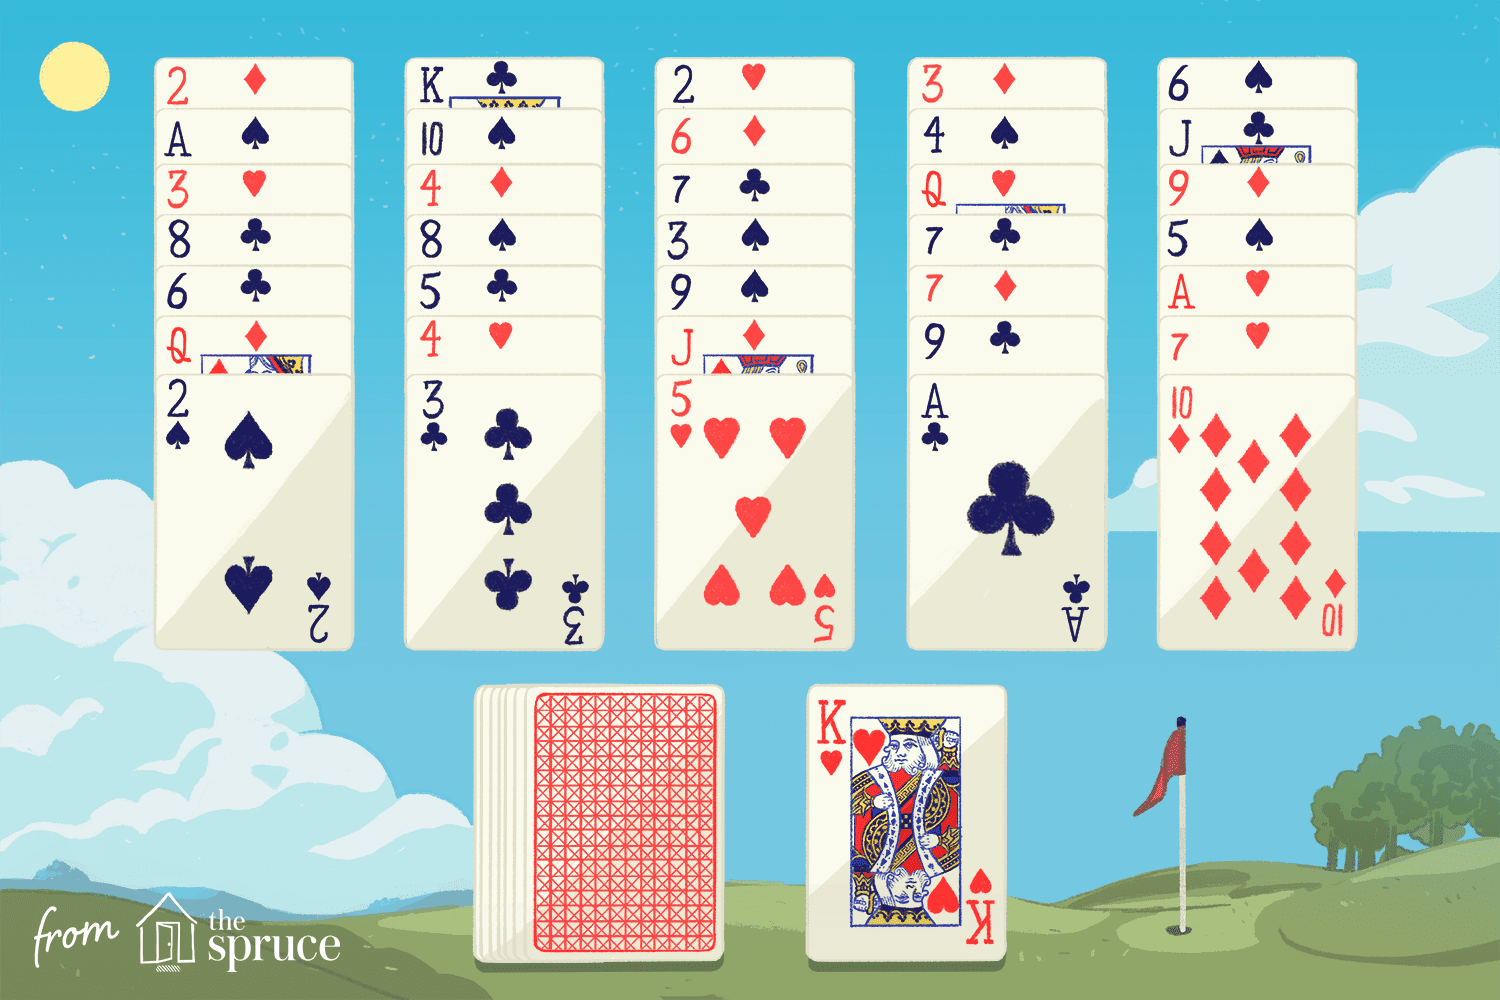 The card game Golf Solitaire derives its name from the